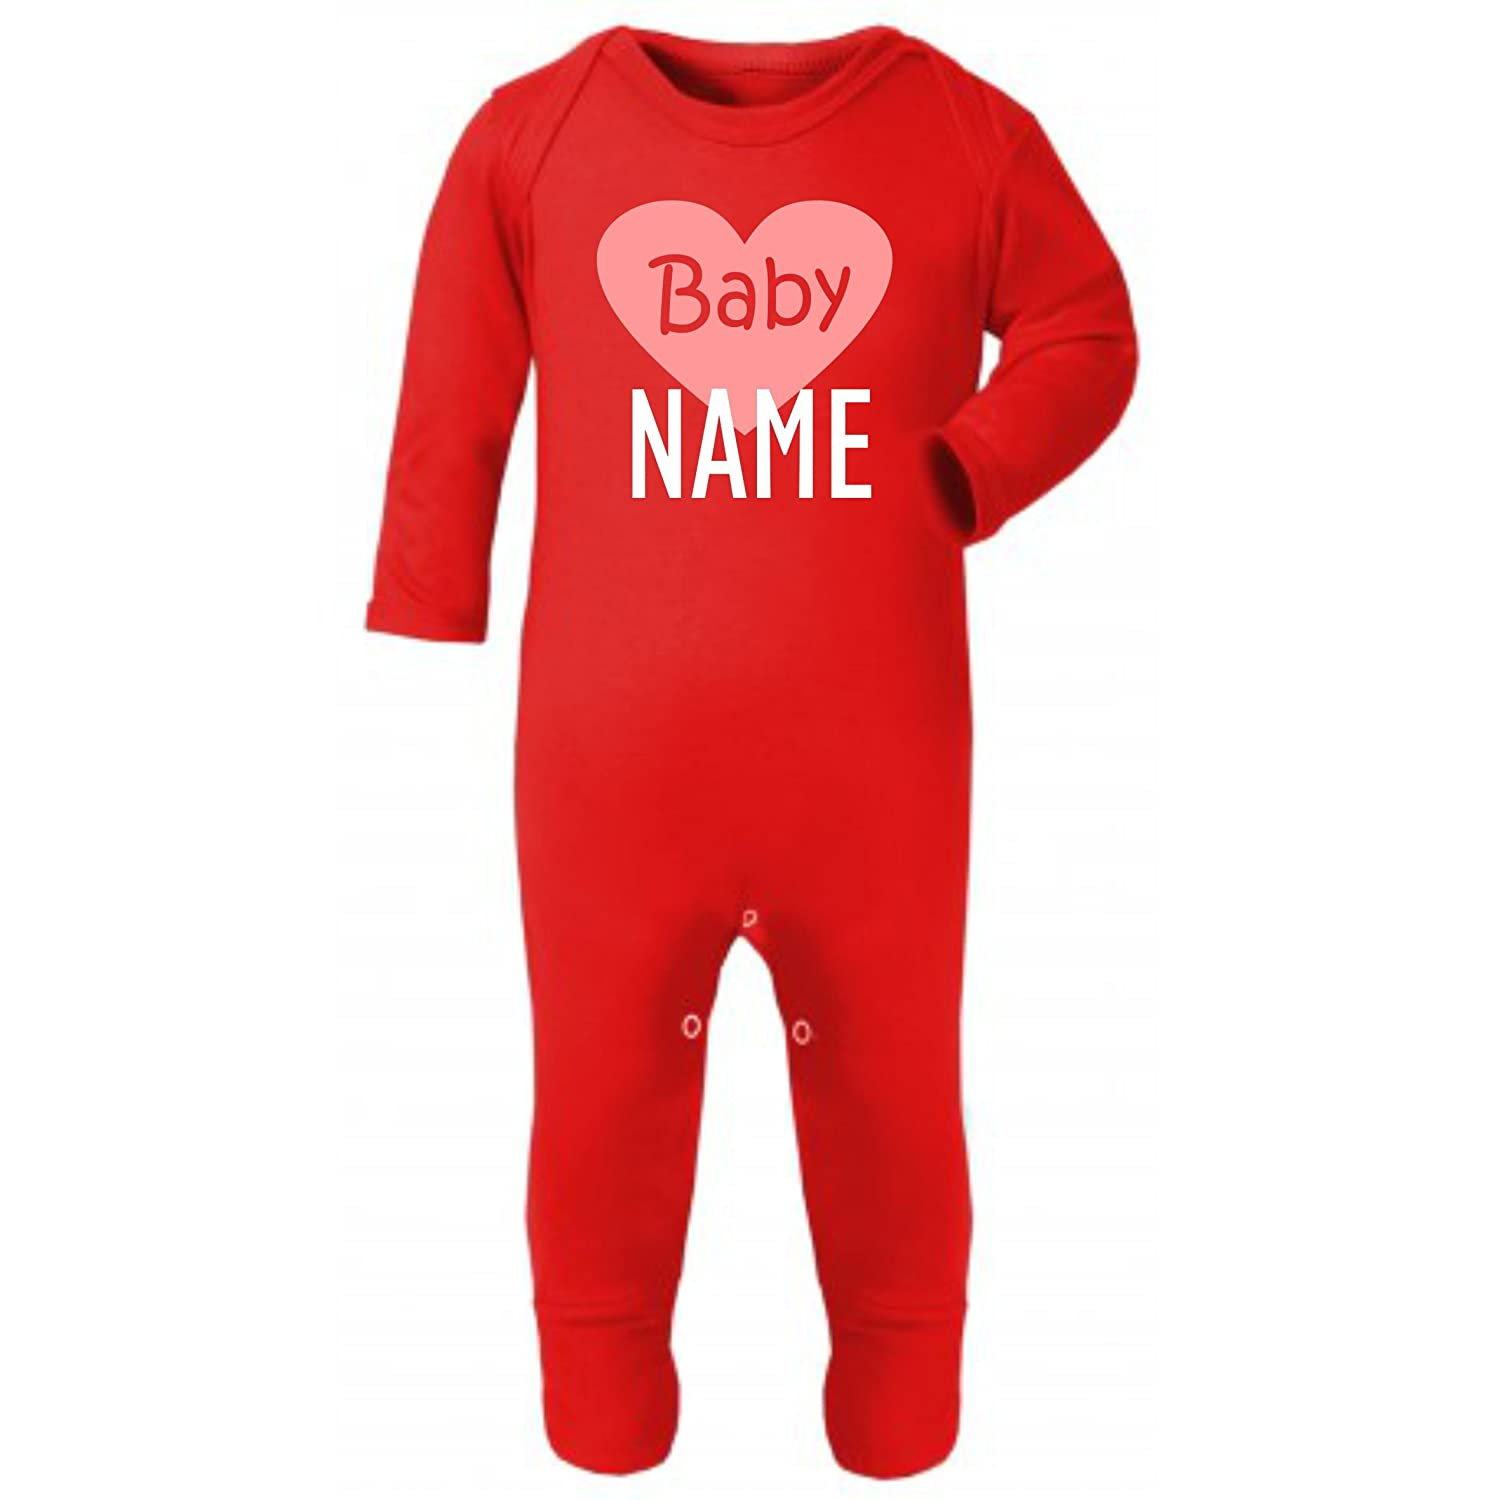 Embroidery and Print City Baby (Name) Personalised Funny Baby Rompersuit Sleepsuit